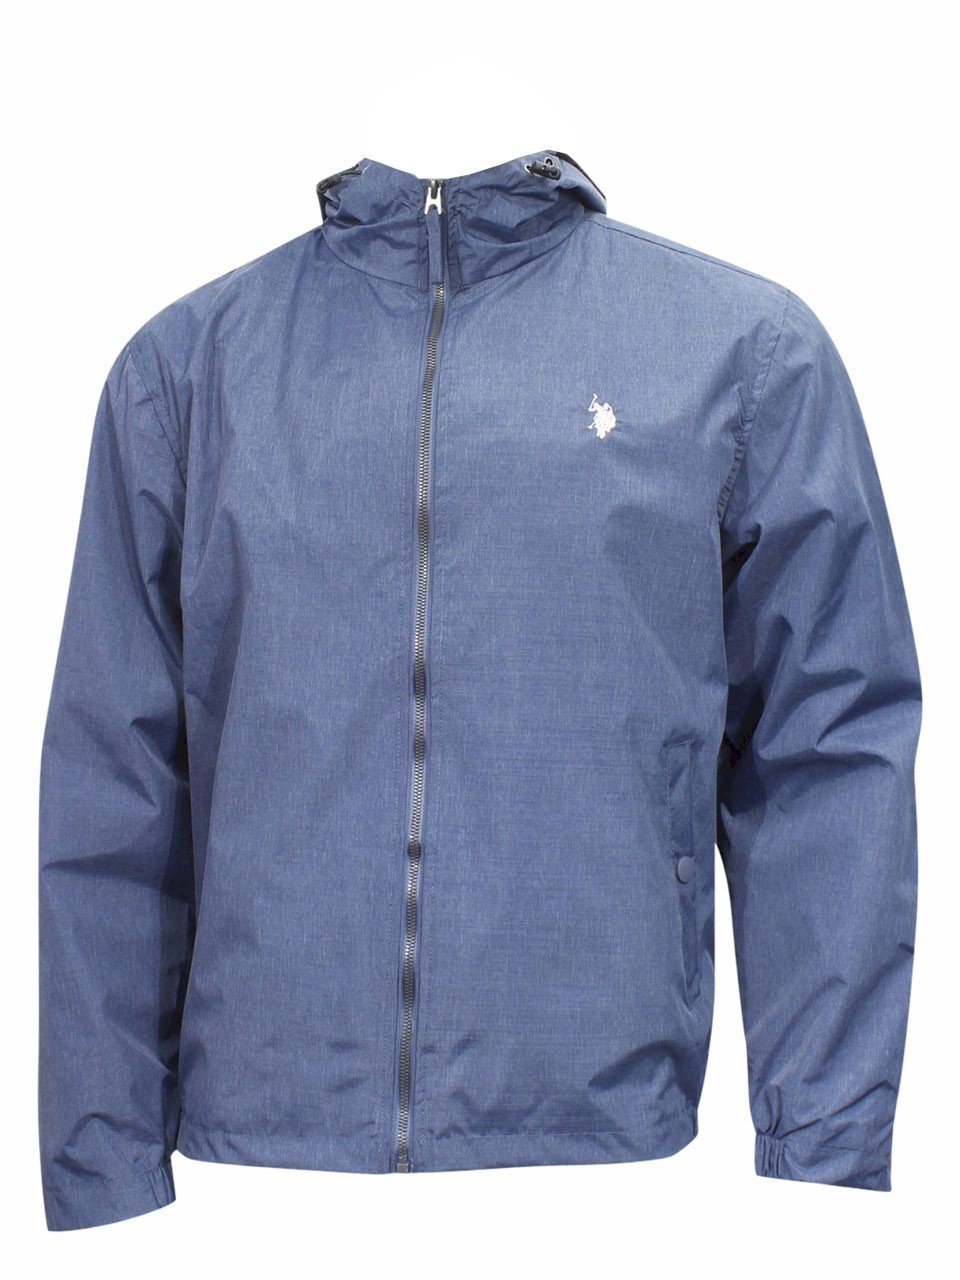 U.S. Polo Assn. OUTERWEAR メンズ B0779861NX Large|Classic Navy Heather/Lmhh Classic Navy Heather/Lmhh Large